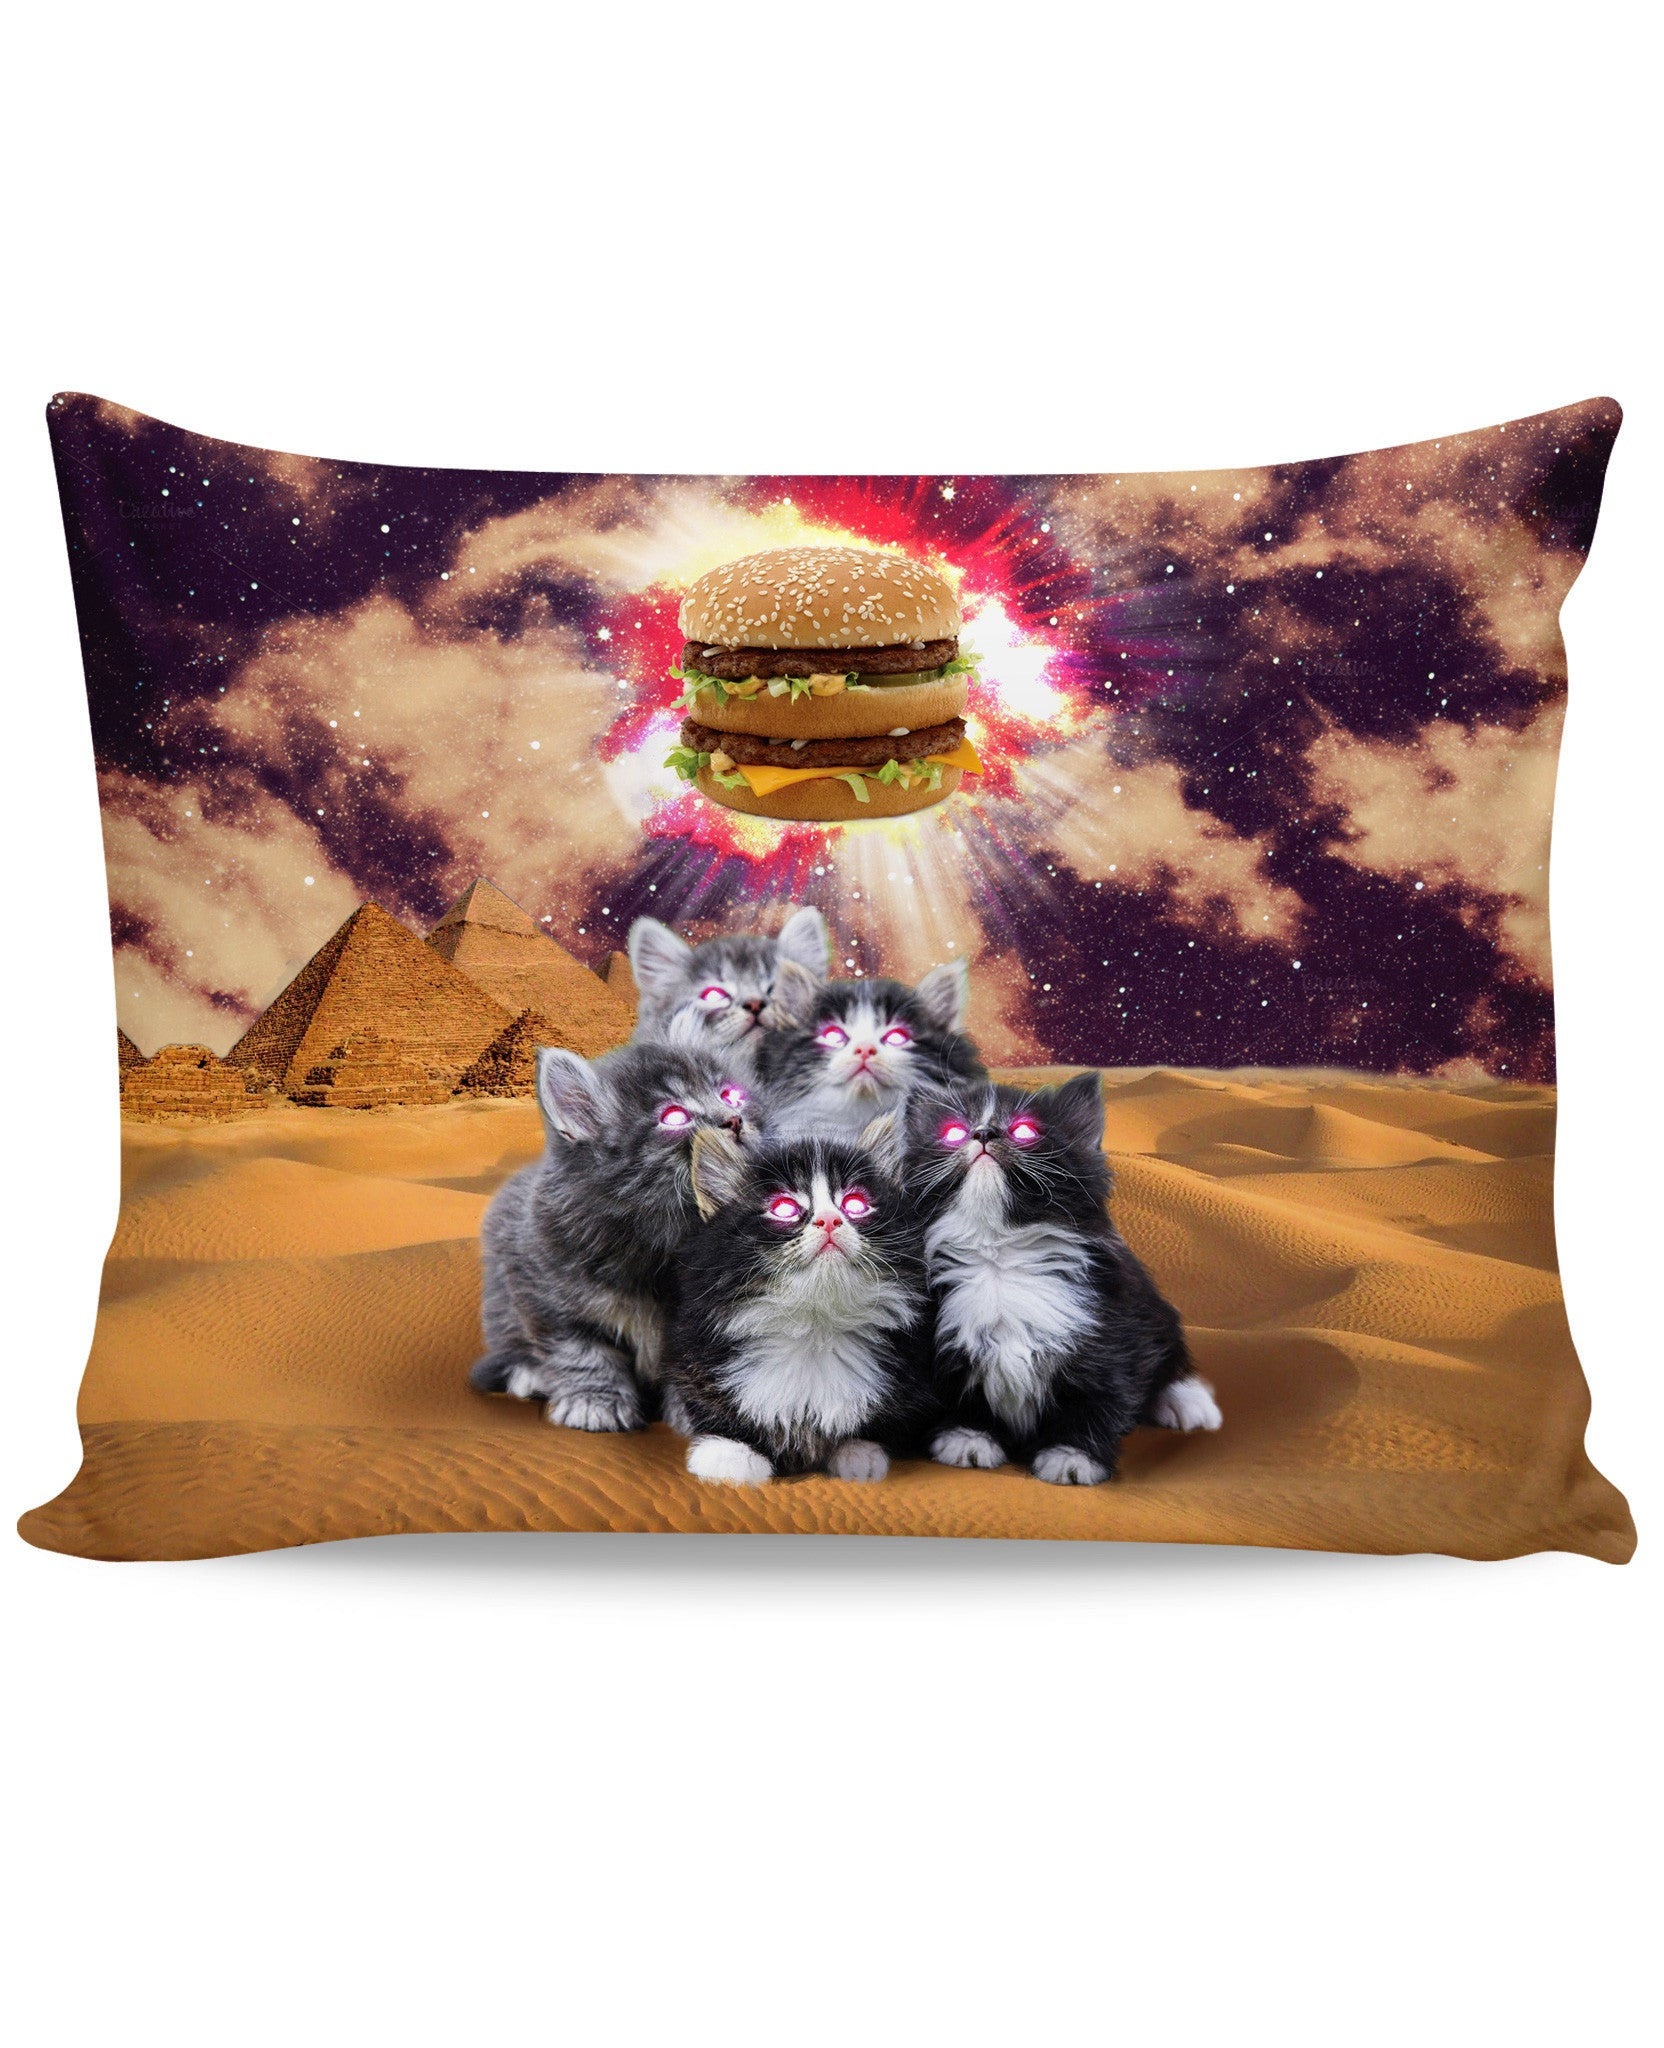 Worship the Burger Pillow Case